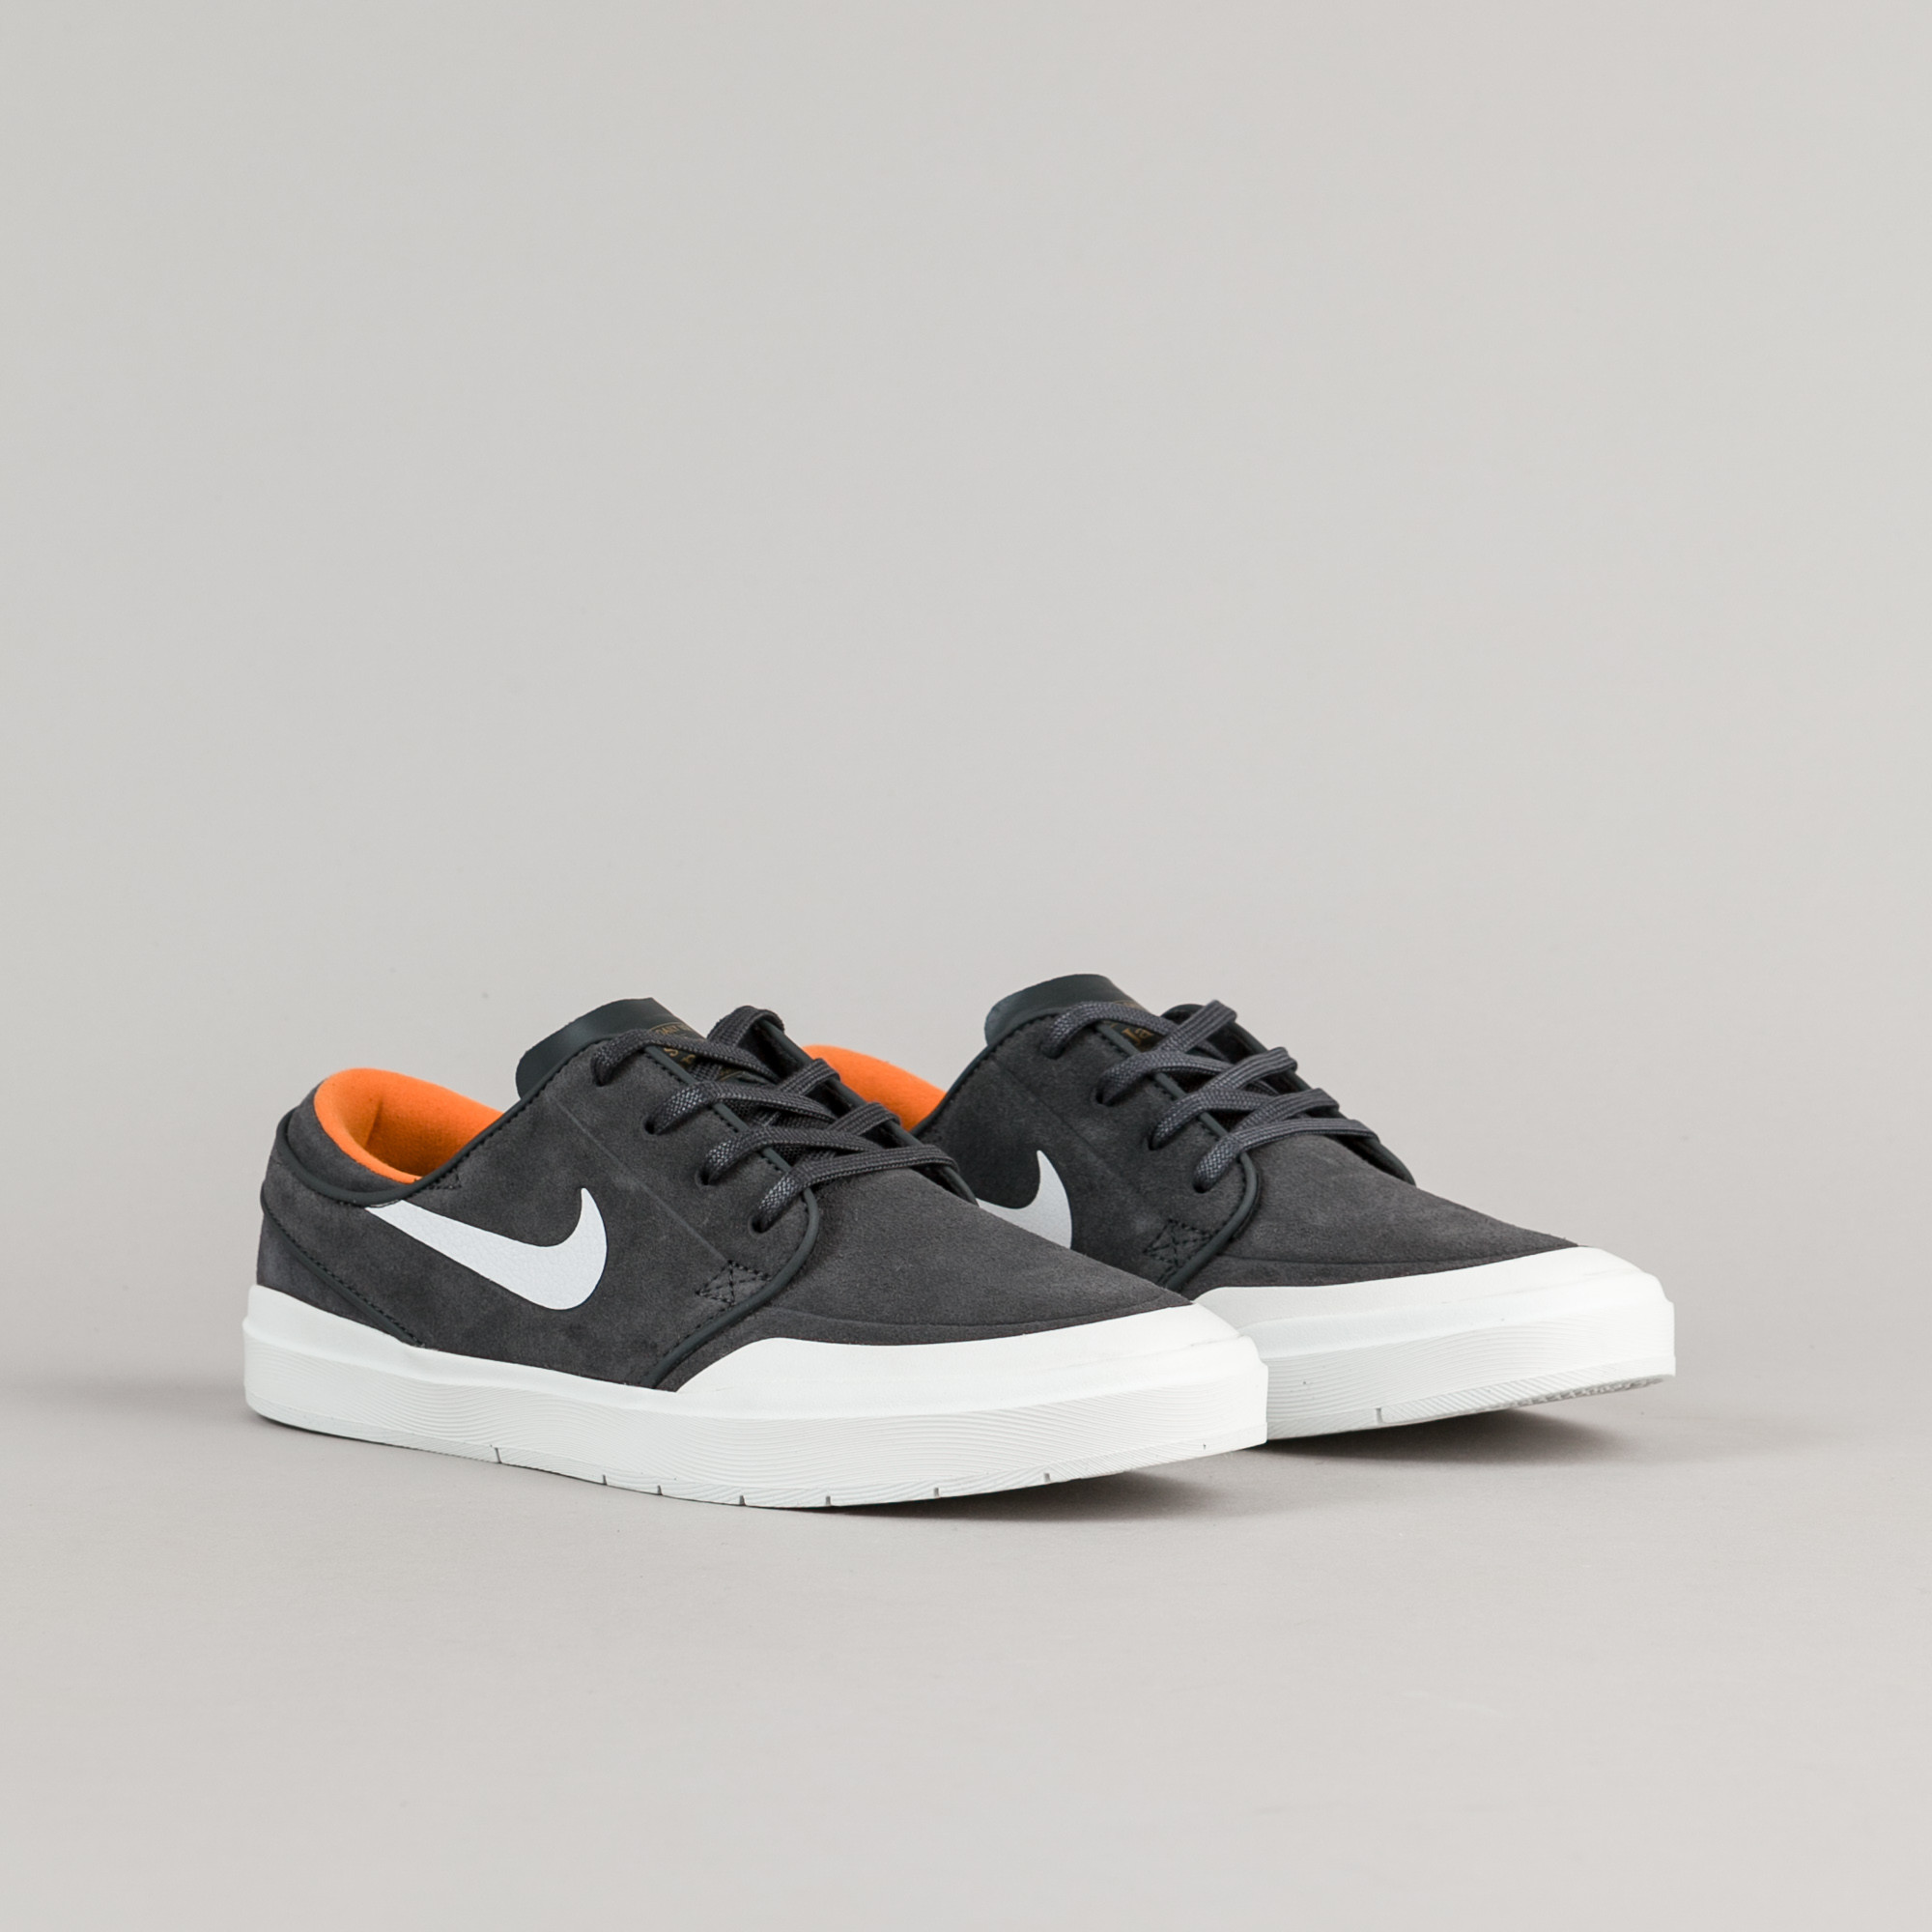 Nike SB Shoes Stefan Janoski Hyperfeel XT Anthracite White Orange Skateboard Sneakers NEW FREE POST